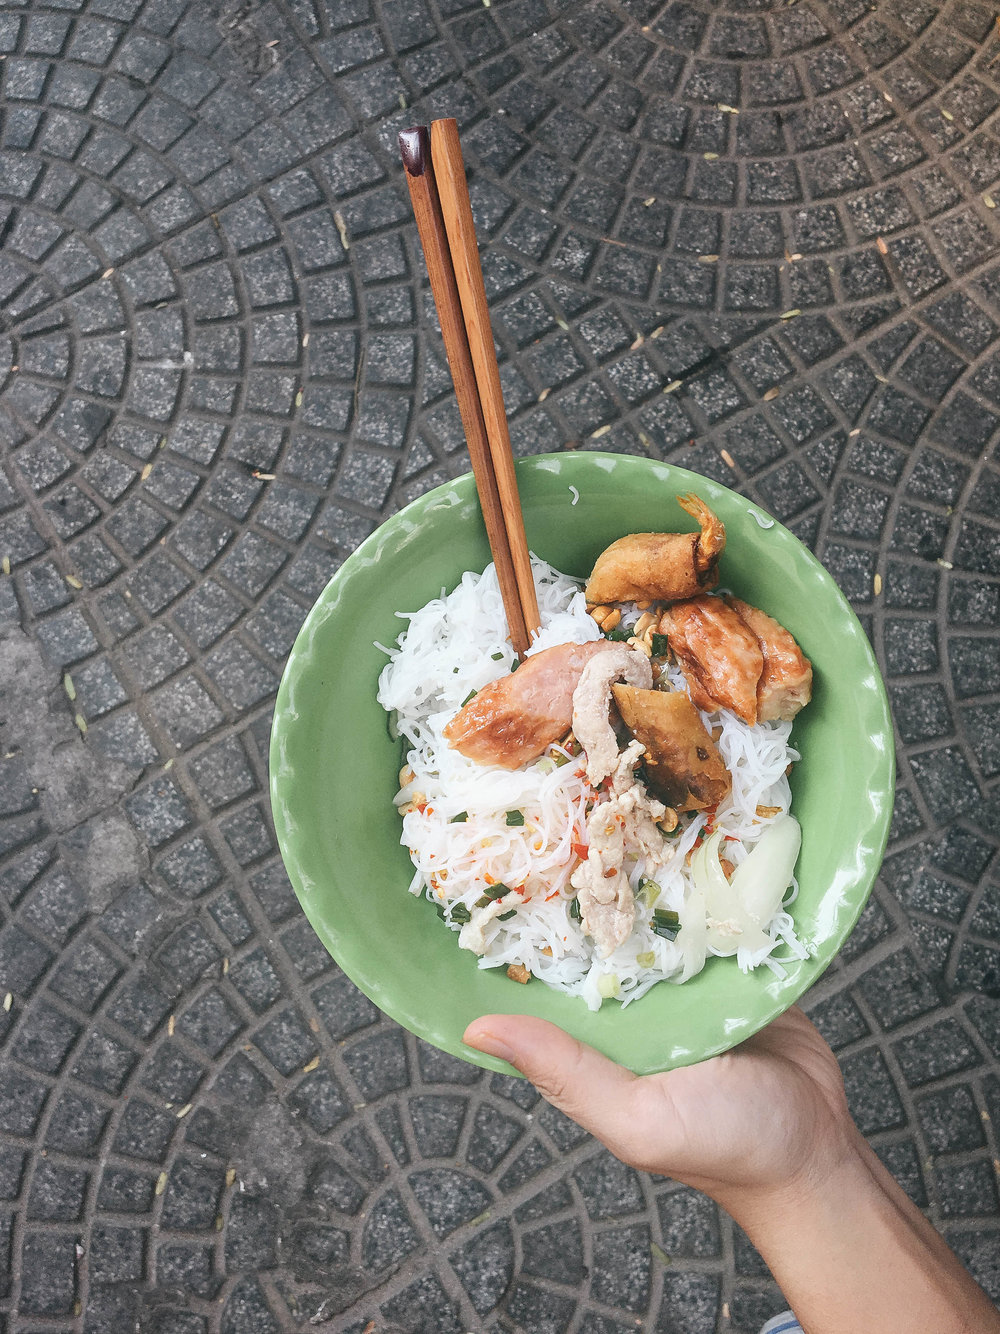 Vietnamese Food in Saigon - Where and What to Eat - street food.jpg